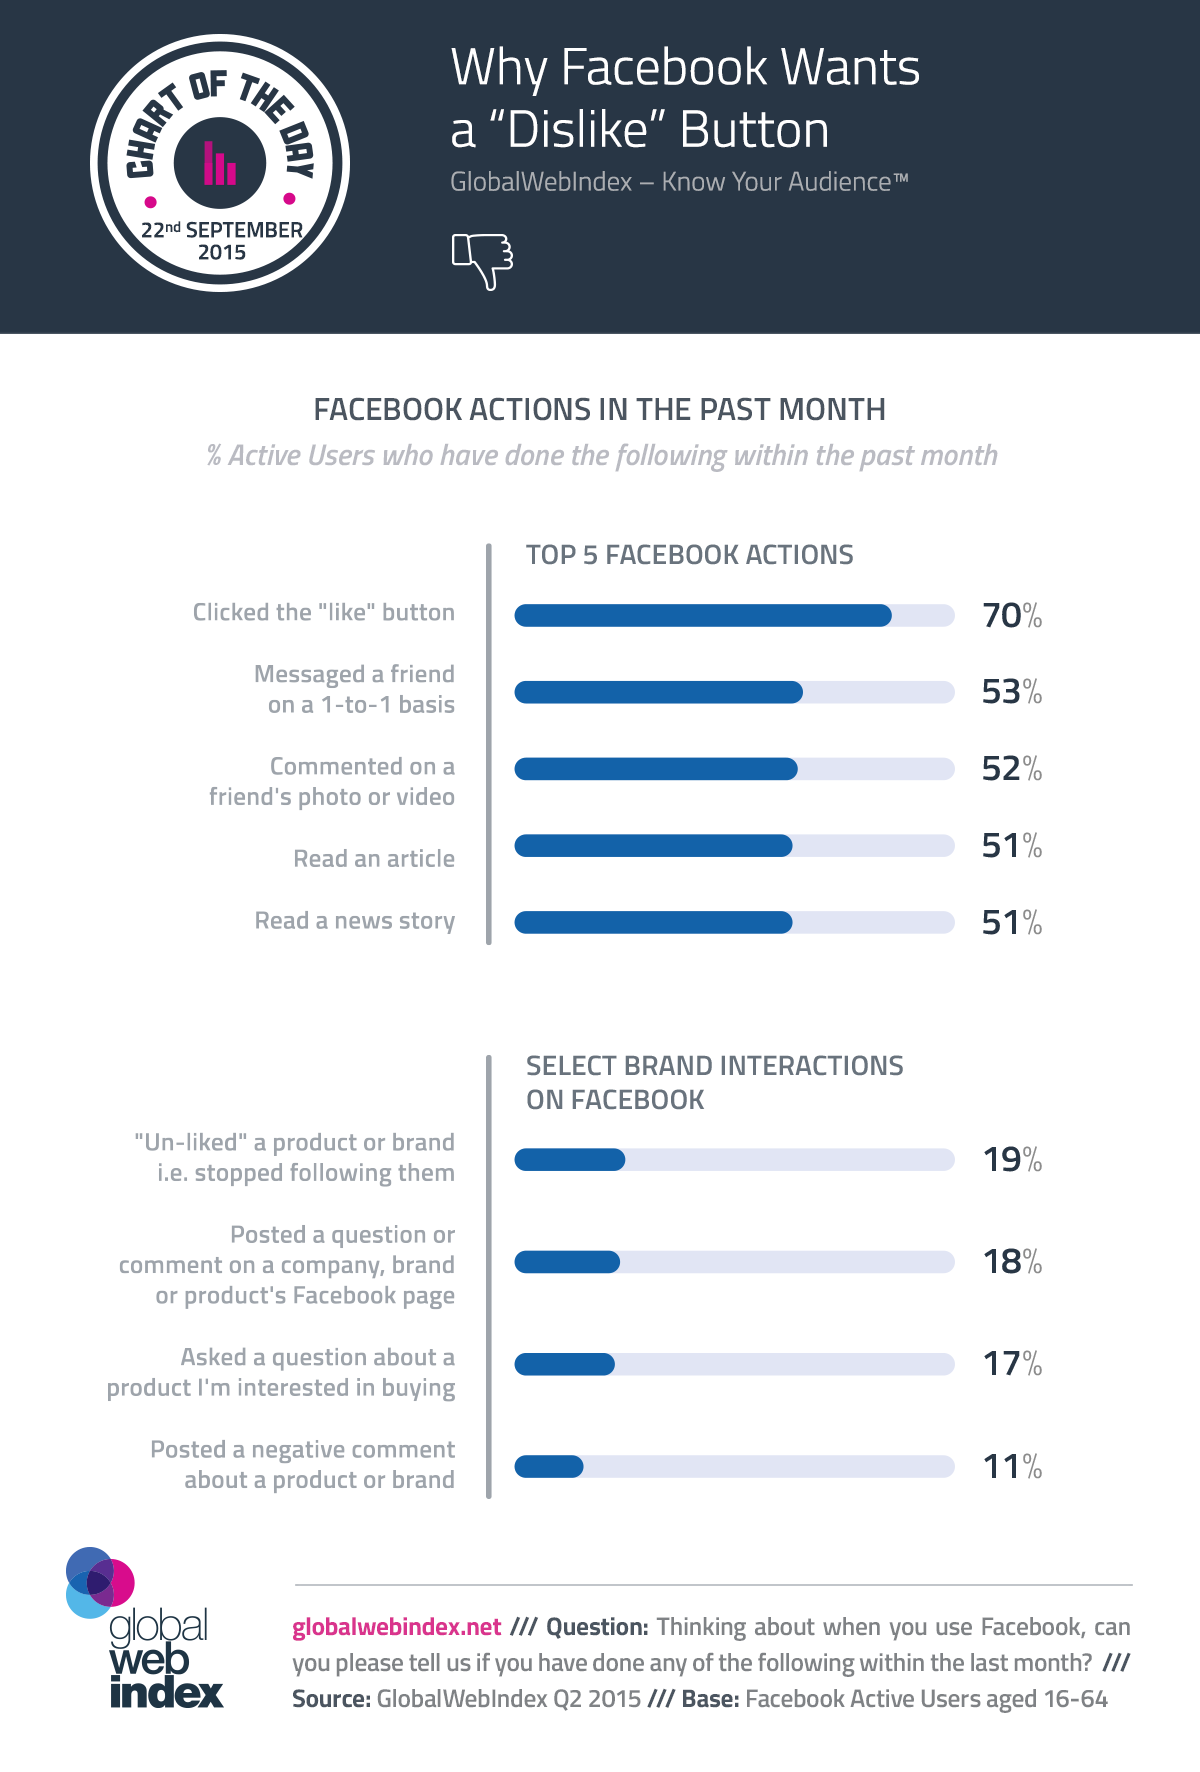 22nd-Sep-2015-Why-Facebook-Wants-a-Dislike-button